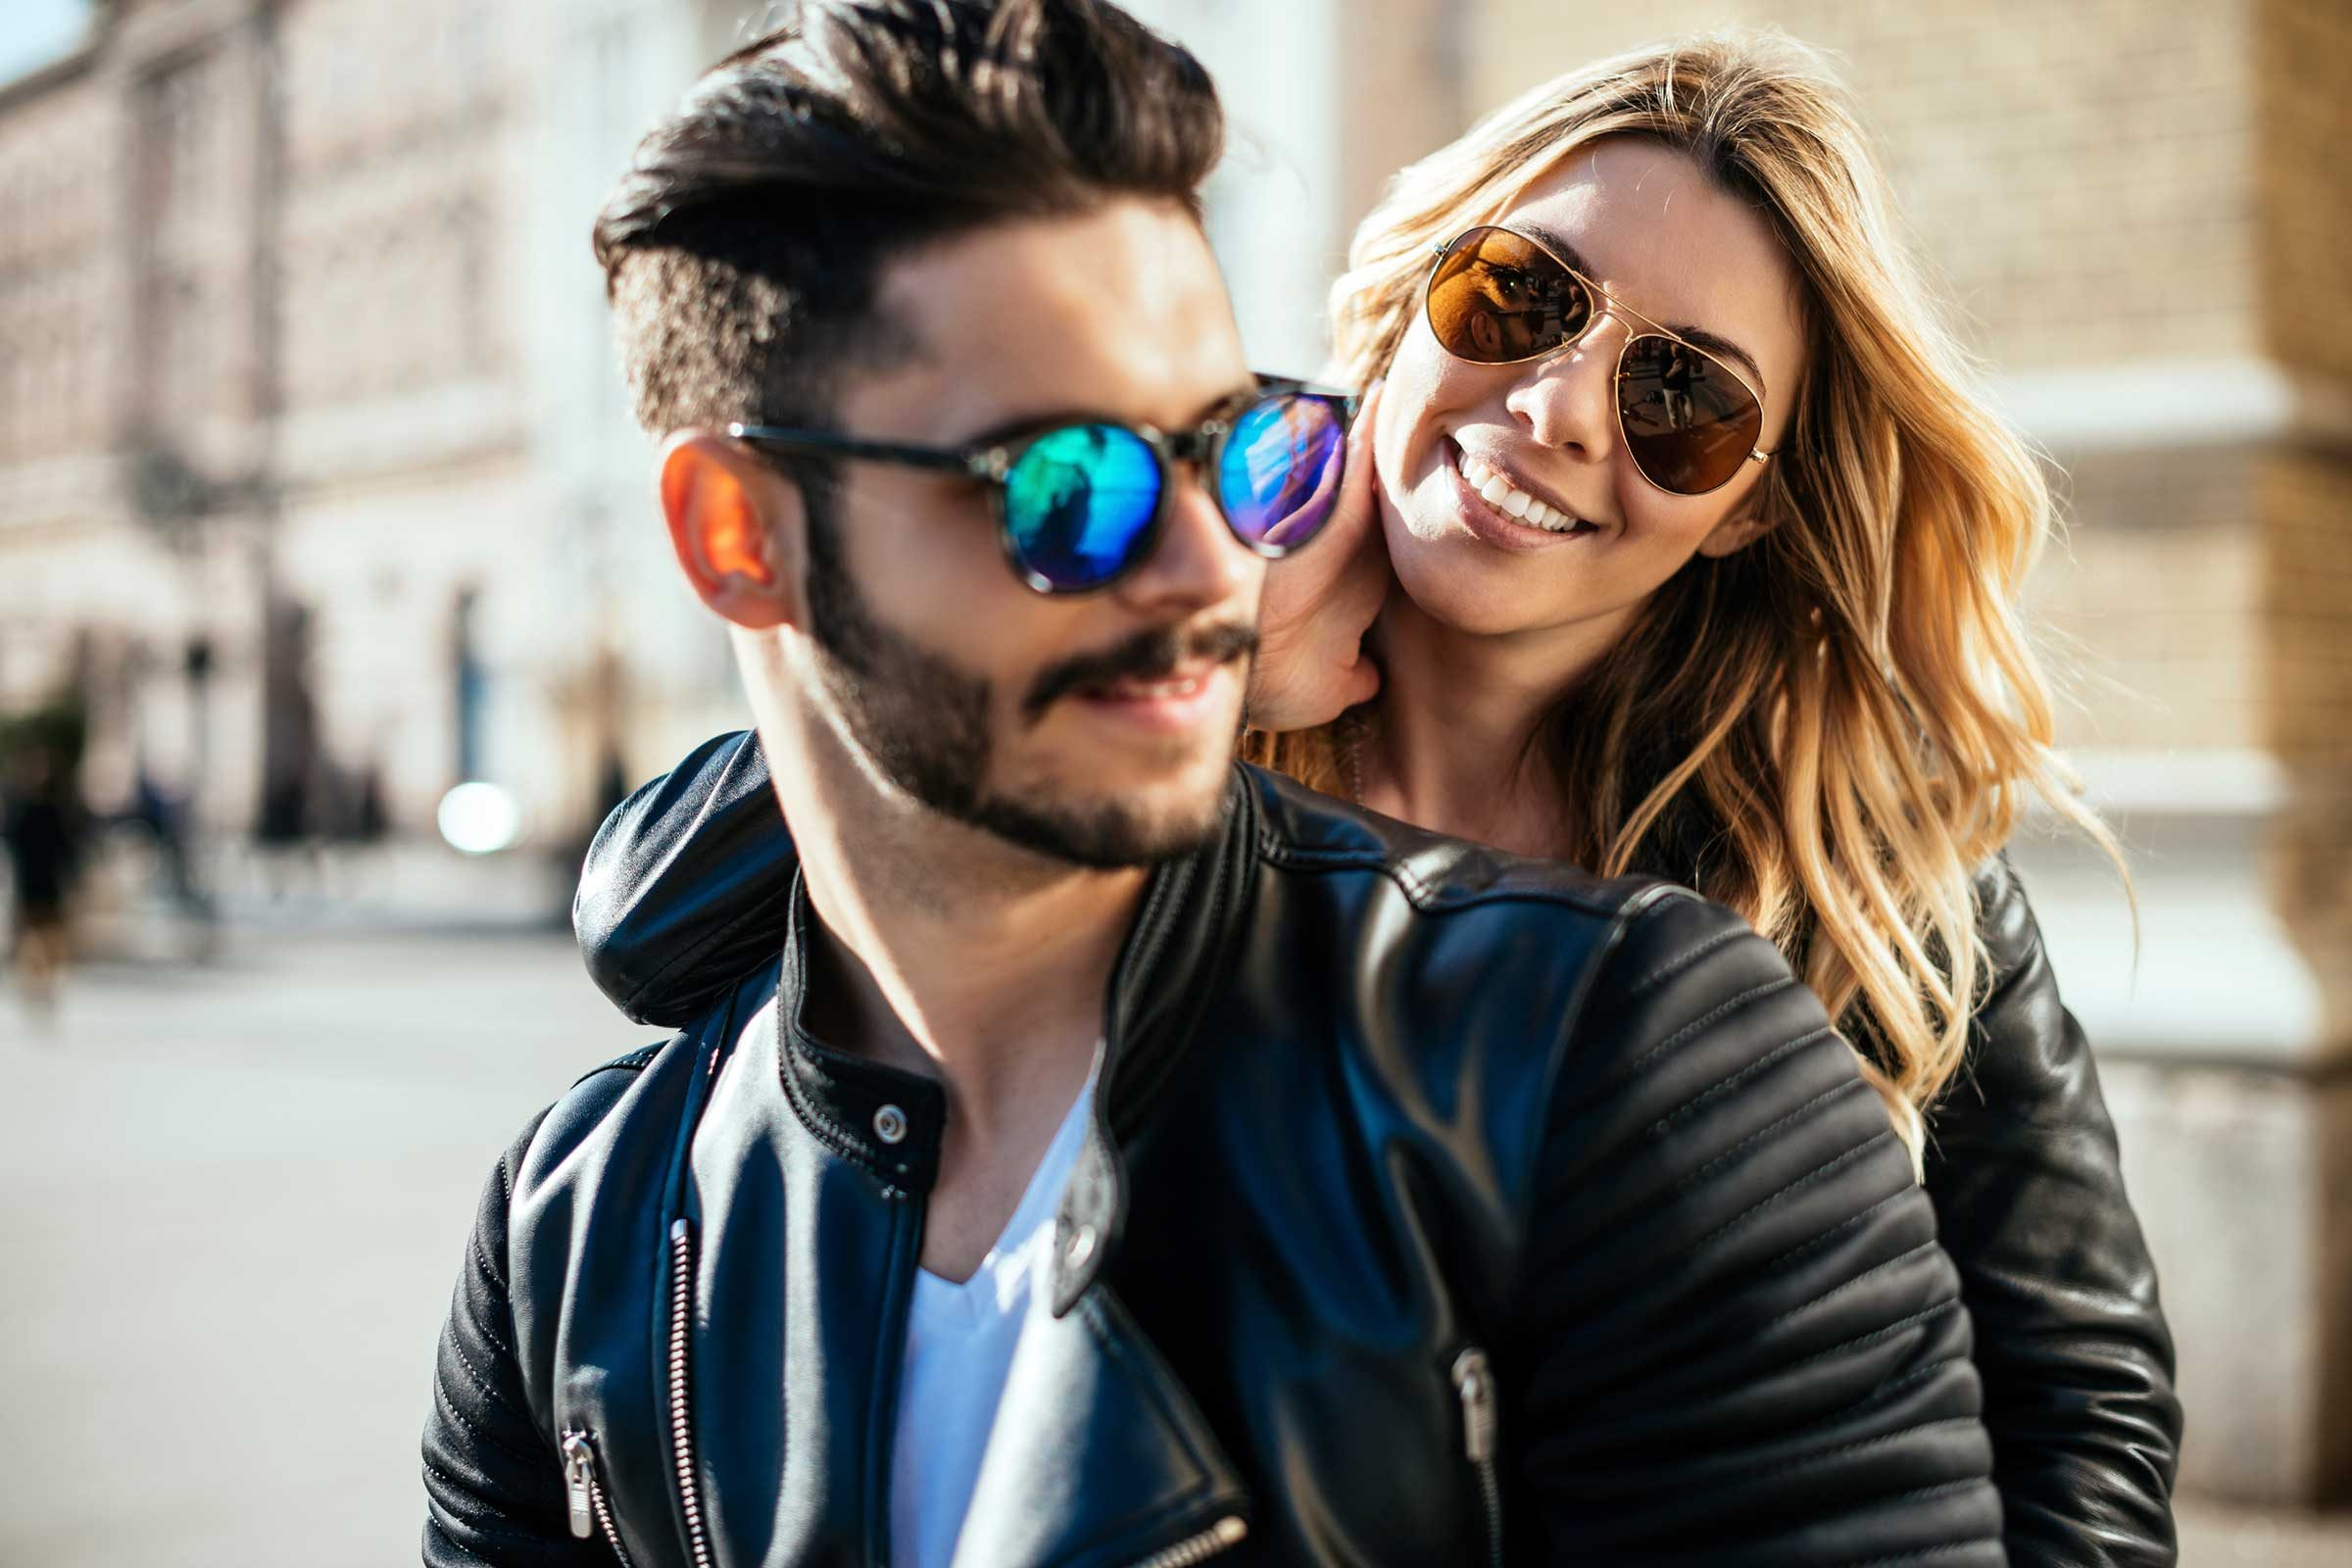 woman and man wearing sunglasses